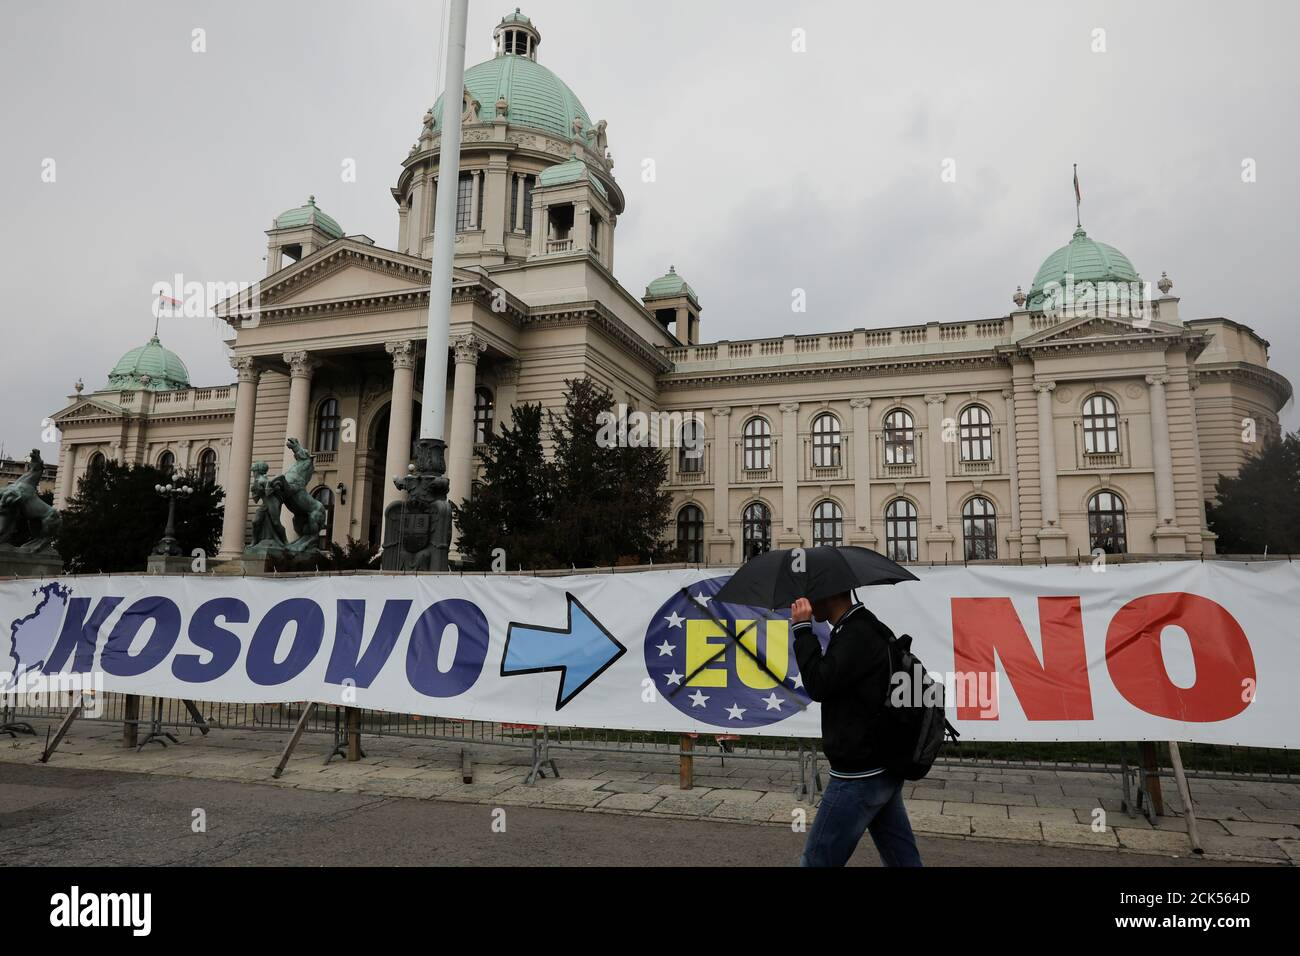 A man walks past a banner in front of Serbian parliament building in central Belgrade, Serbia, March 27, 2018. REUTERS/Marko Djurica Stock Photo